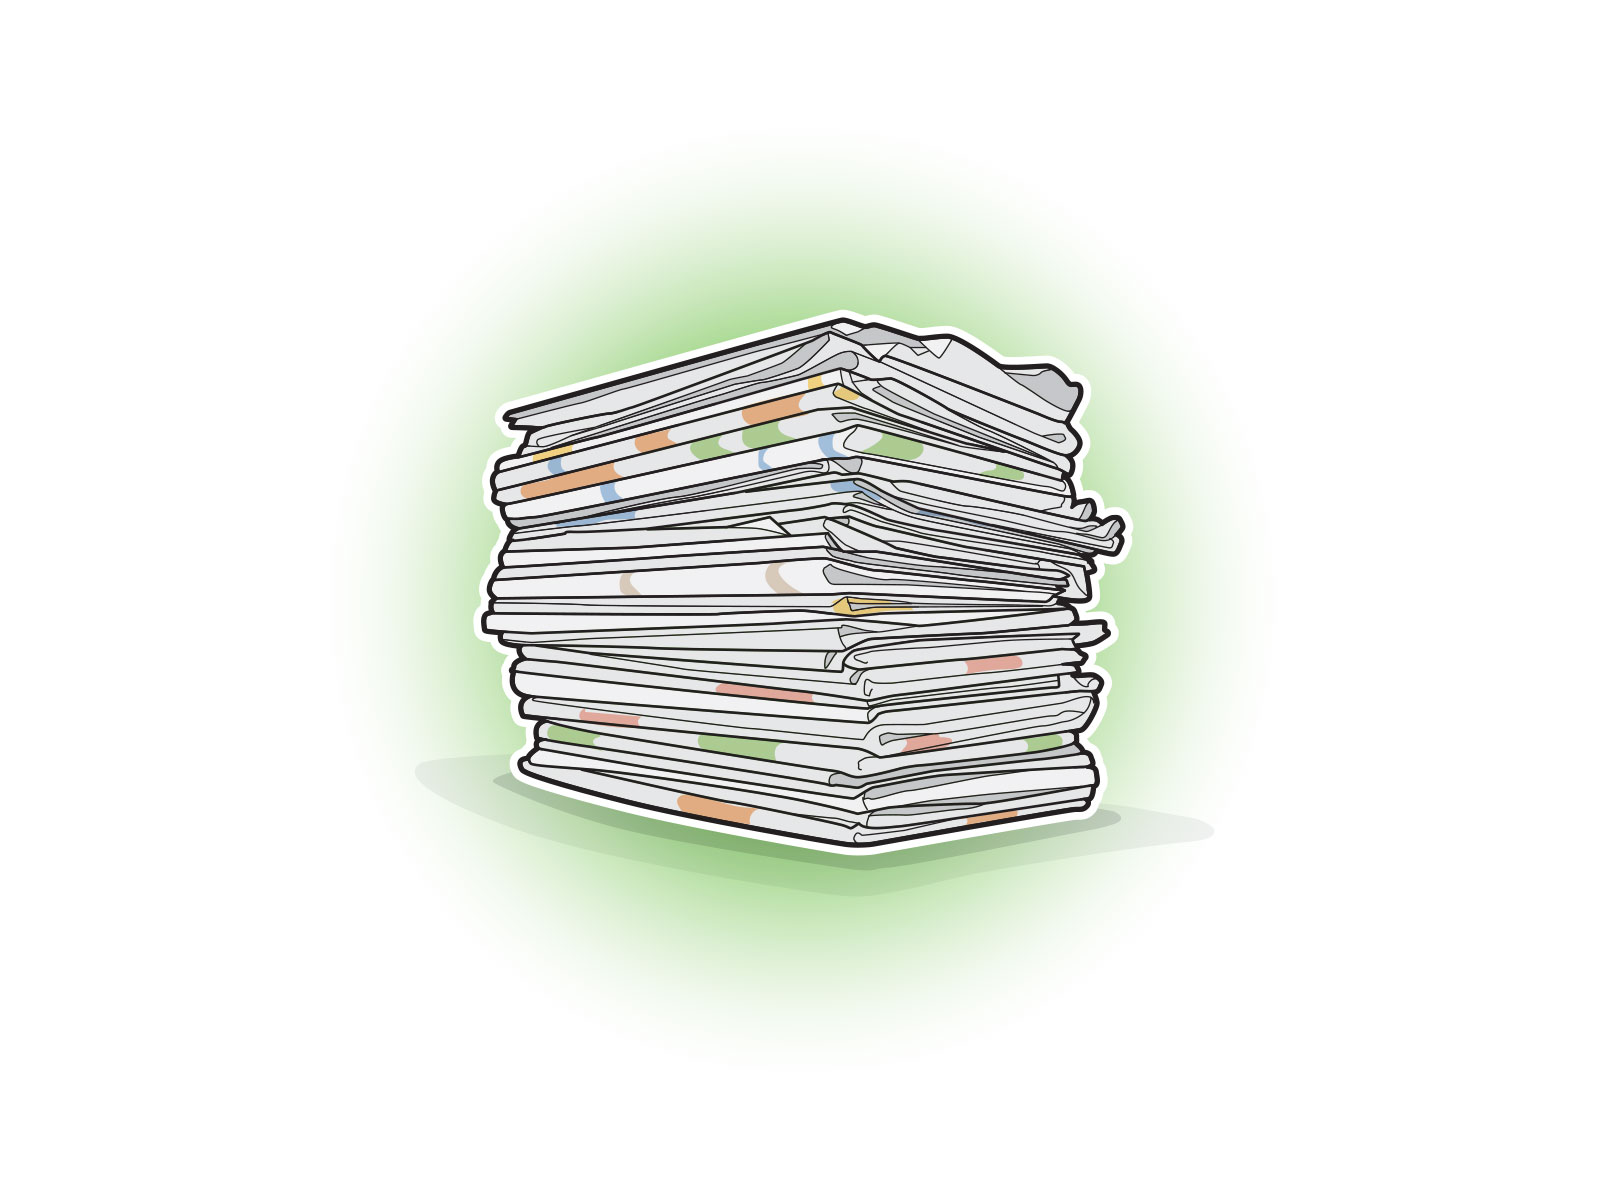 Stylised vector icon illustration of a pile of newspaper for recycling